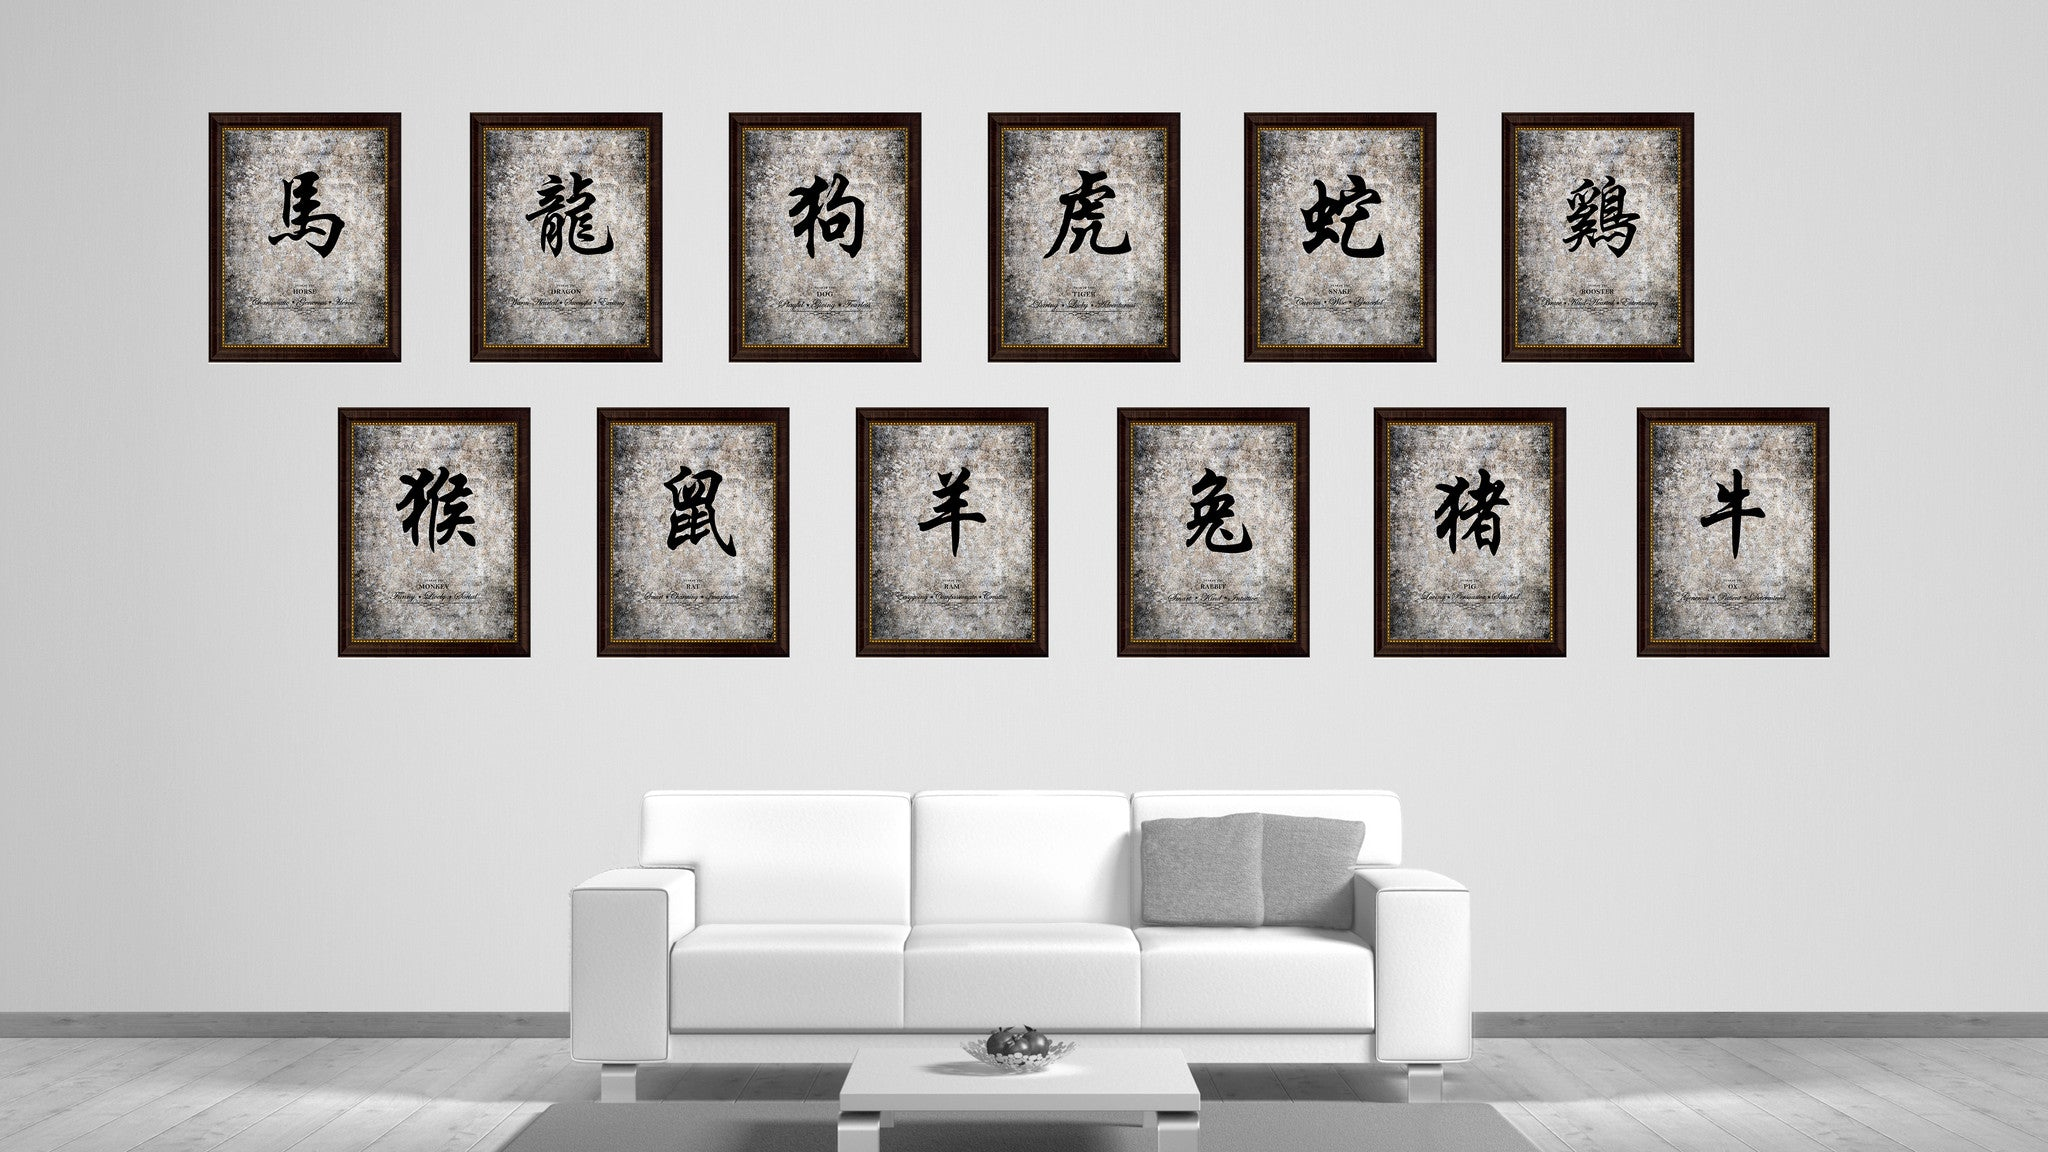 rat chinese zodiac character decorative wall art home décor  - rat zodiac character canvas print brown picture frame home decor wall artgift ideas